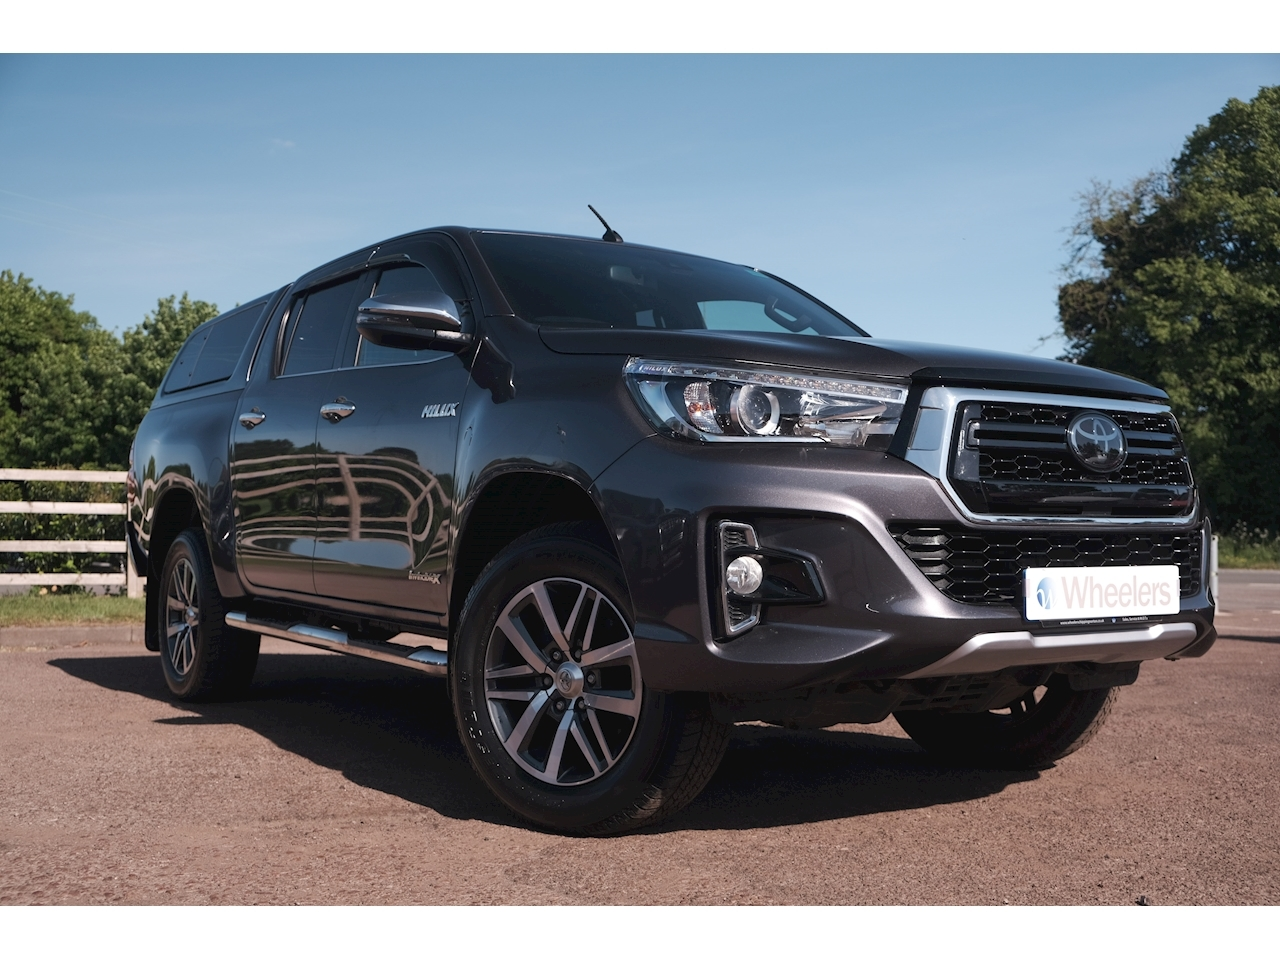 Toyota Hilux Invicible X 4Wd D-4D Dcb Light 4X4 Utility 2.4 Automatic Diesel